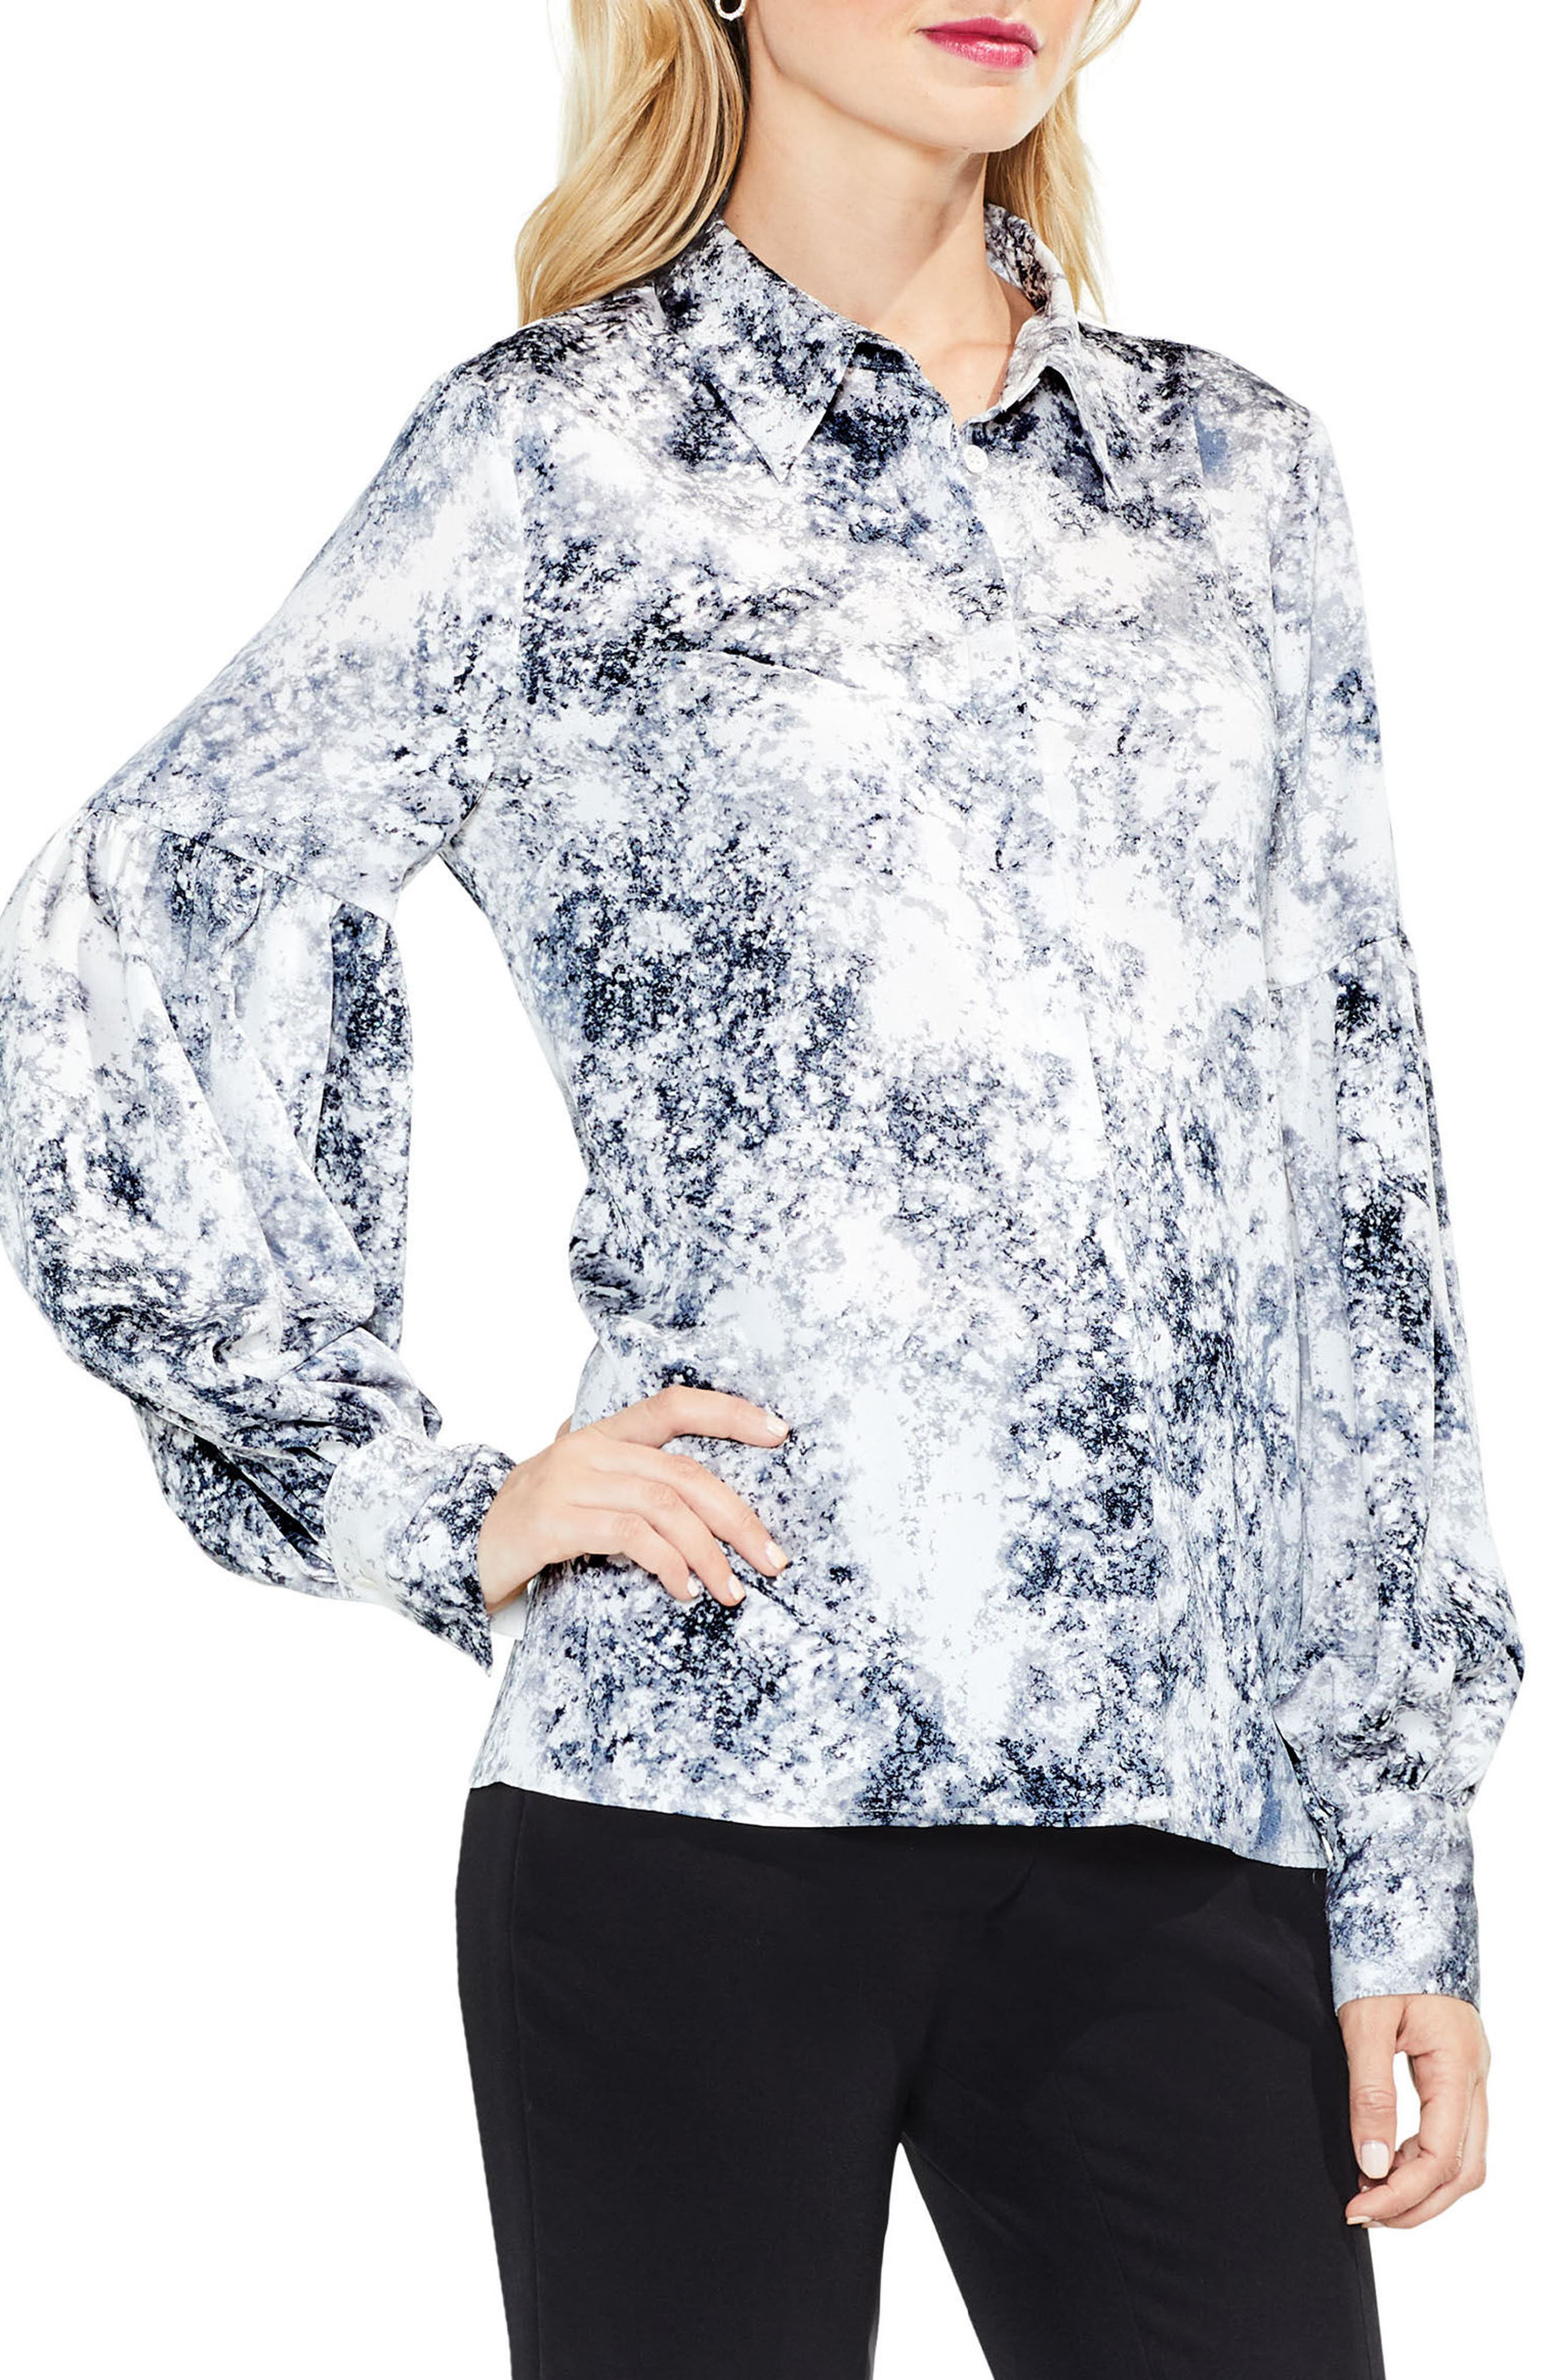 Speckle Atmosphere Top,                         Main,                         color, 108